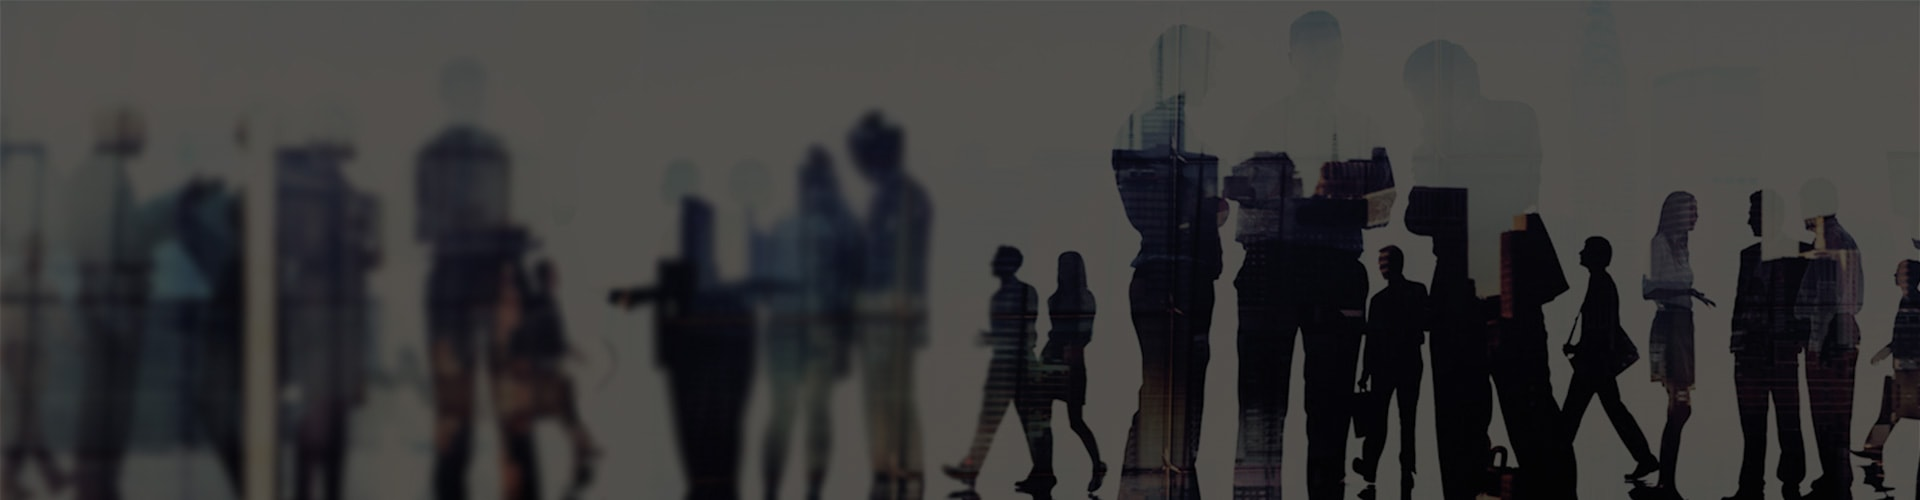 IBM i experts to help you maintain, develop, and modernize your IBM i applications